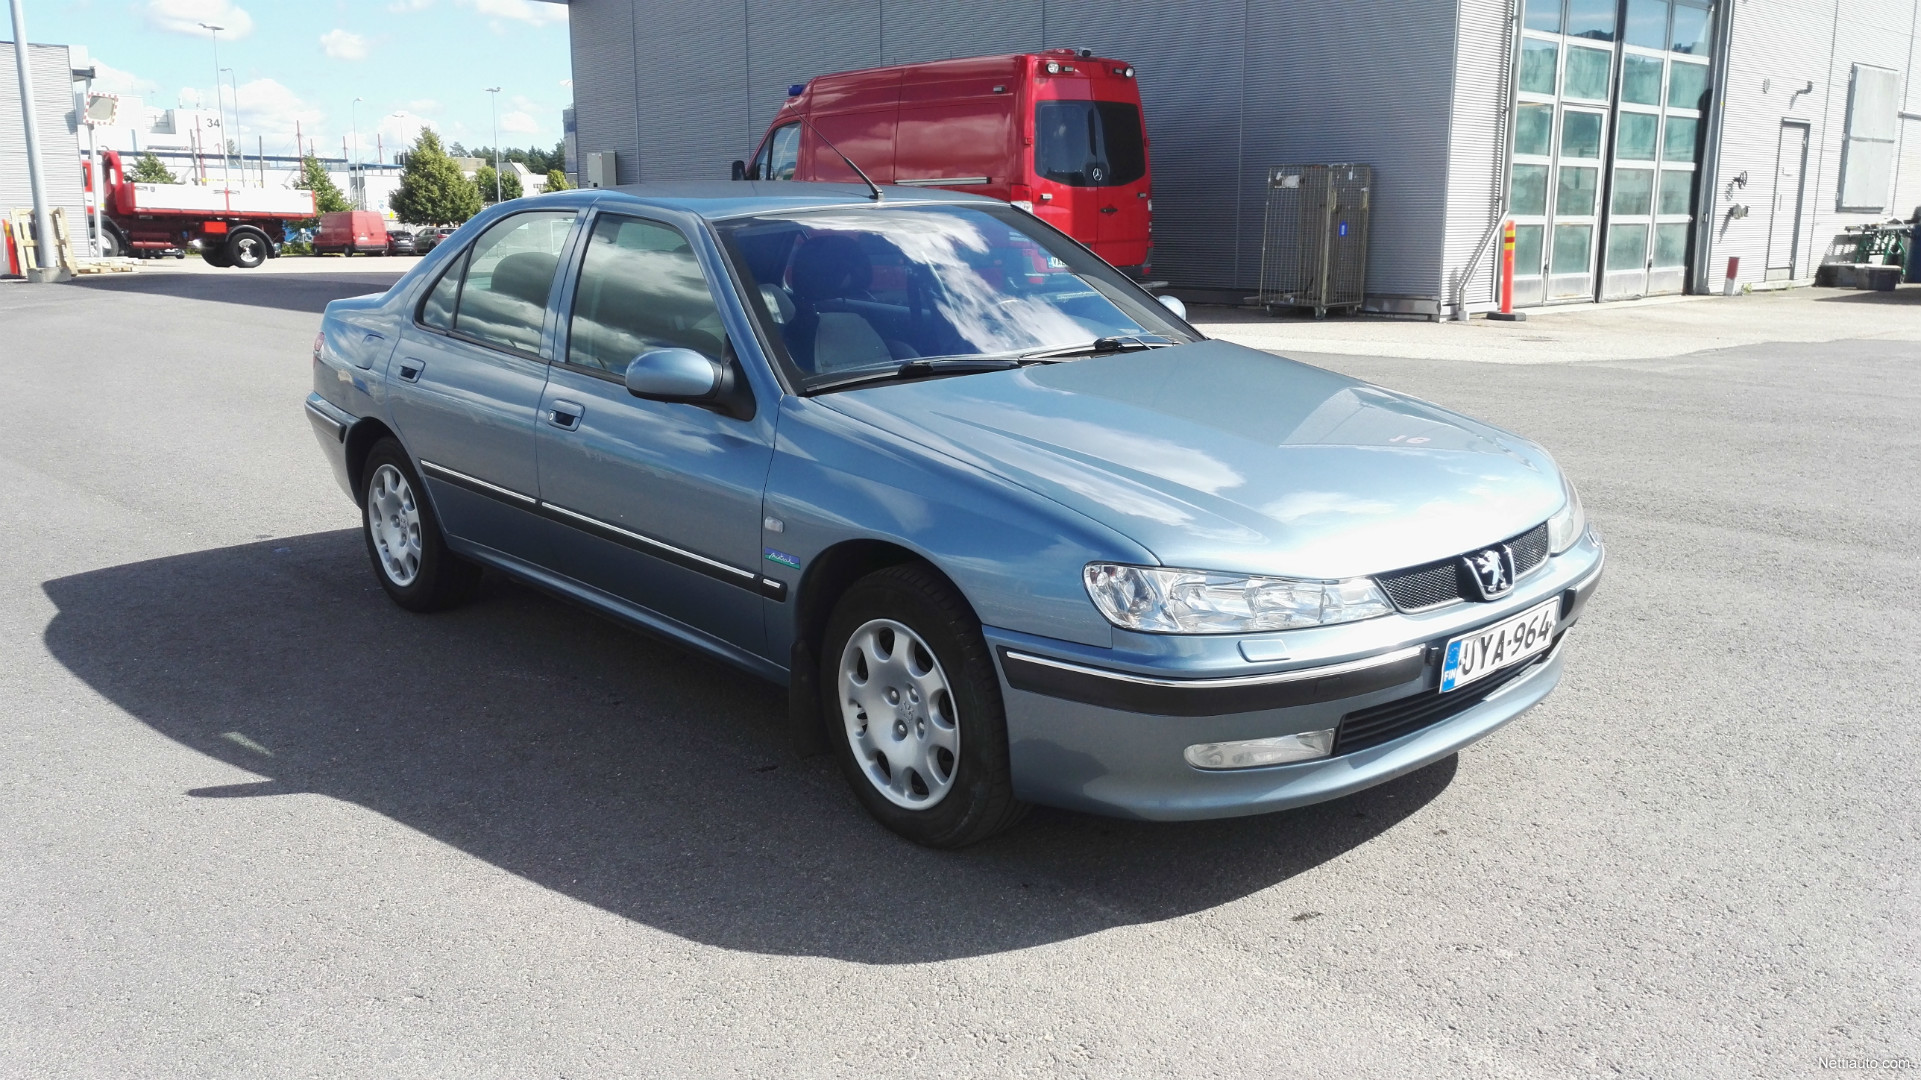 Peugeot 406 manual download free array peugeot 406 owners manual free download securityksacom 5151915 rh pacte contre hulot info fandeluxe Choice Image